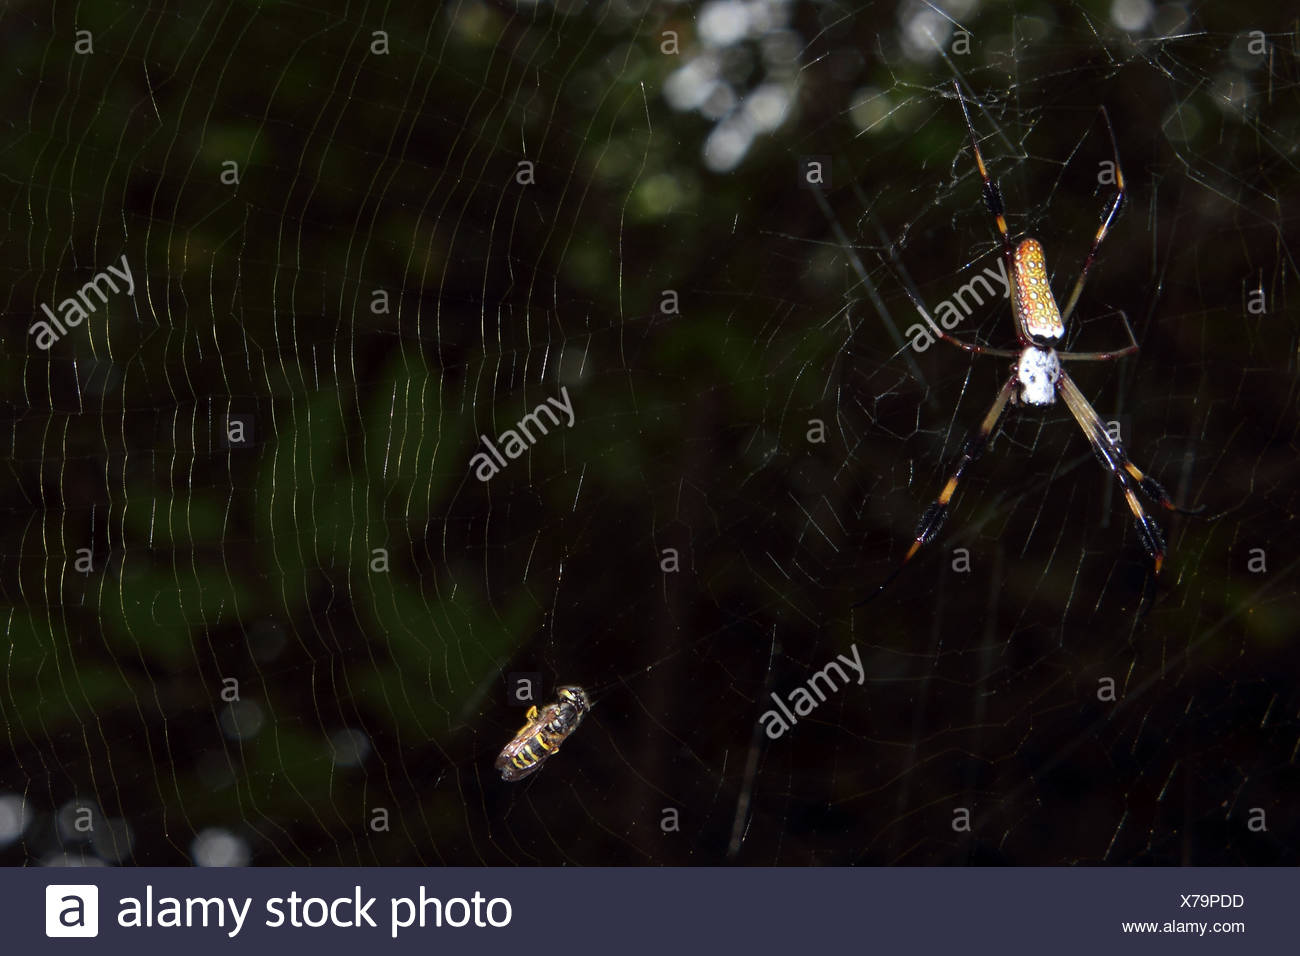 Spider and Prey - Stock Image